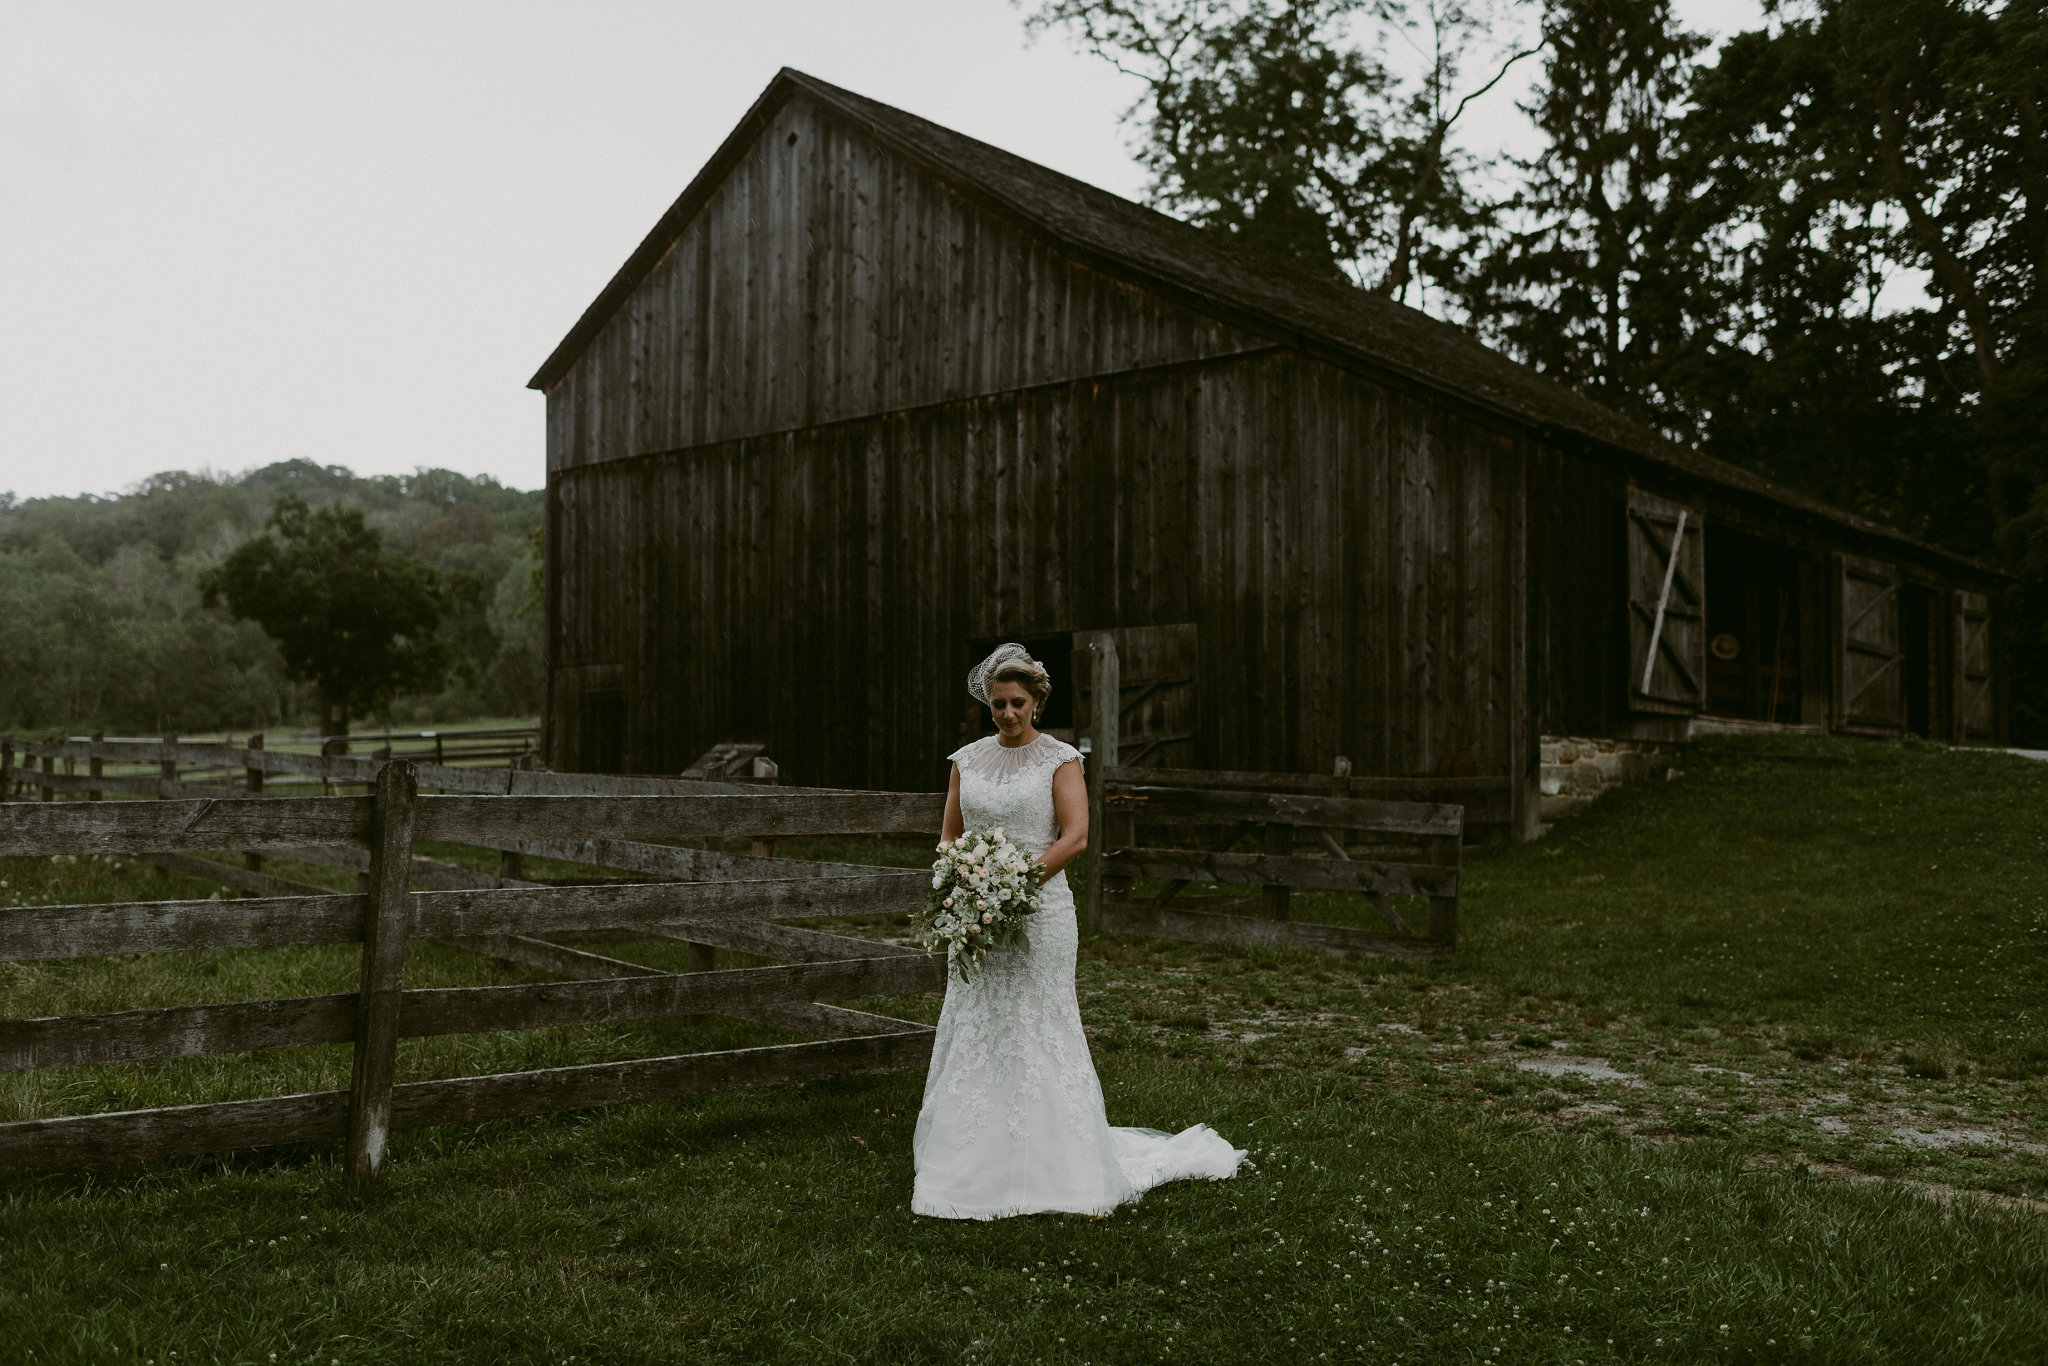 Hines-Hill-Farm-Cuyahoga-Valley-National-Park-Wedding_Emi+Andy_MJPHOTO-127.jpg